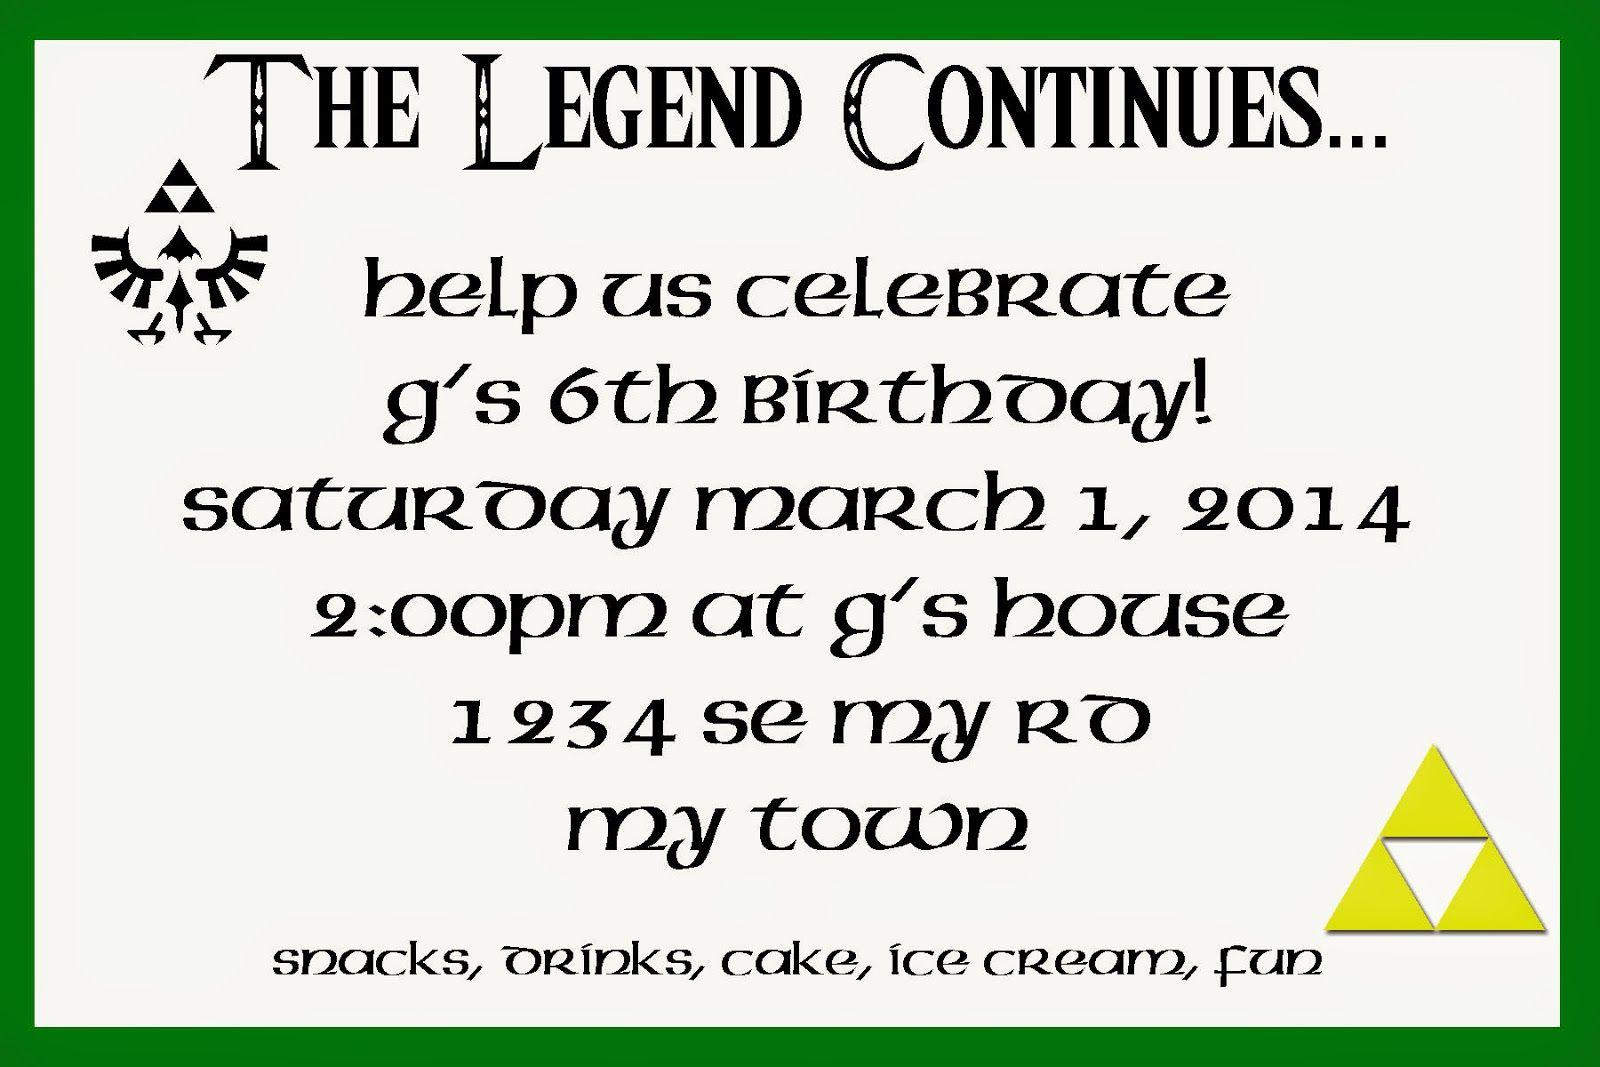 Legend of zelda link themed birthday party invitation party legend of zelda link themed birthday party invitation stopboris Gallery